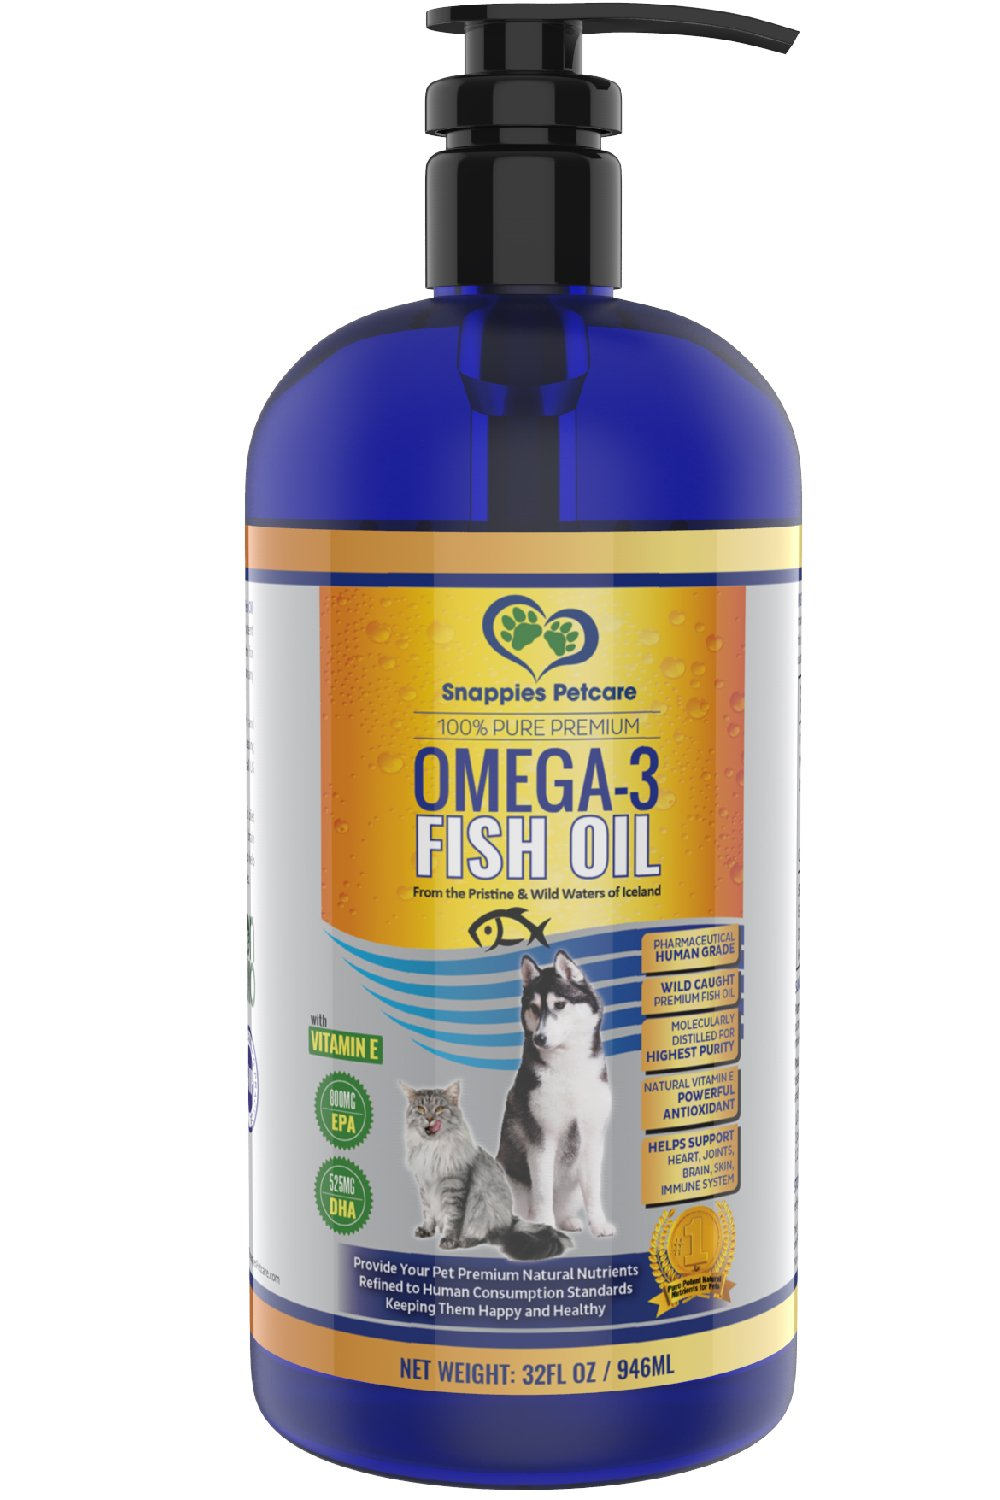 Omega 3 Fish Oil For Dogs and Cats - Wild Icelandic Pure, Natural, Odour Free, Liquid Fish Oil Pet Supplements with Vitamin E & Superior EPA & DHA for Optimal Nutrition / Health - 32oz Pump